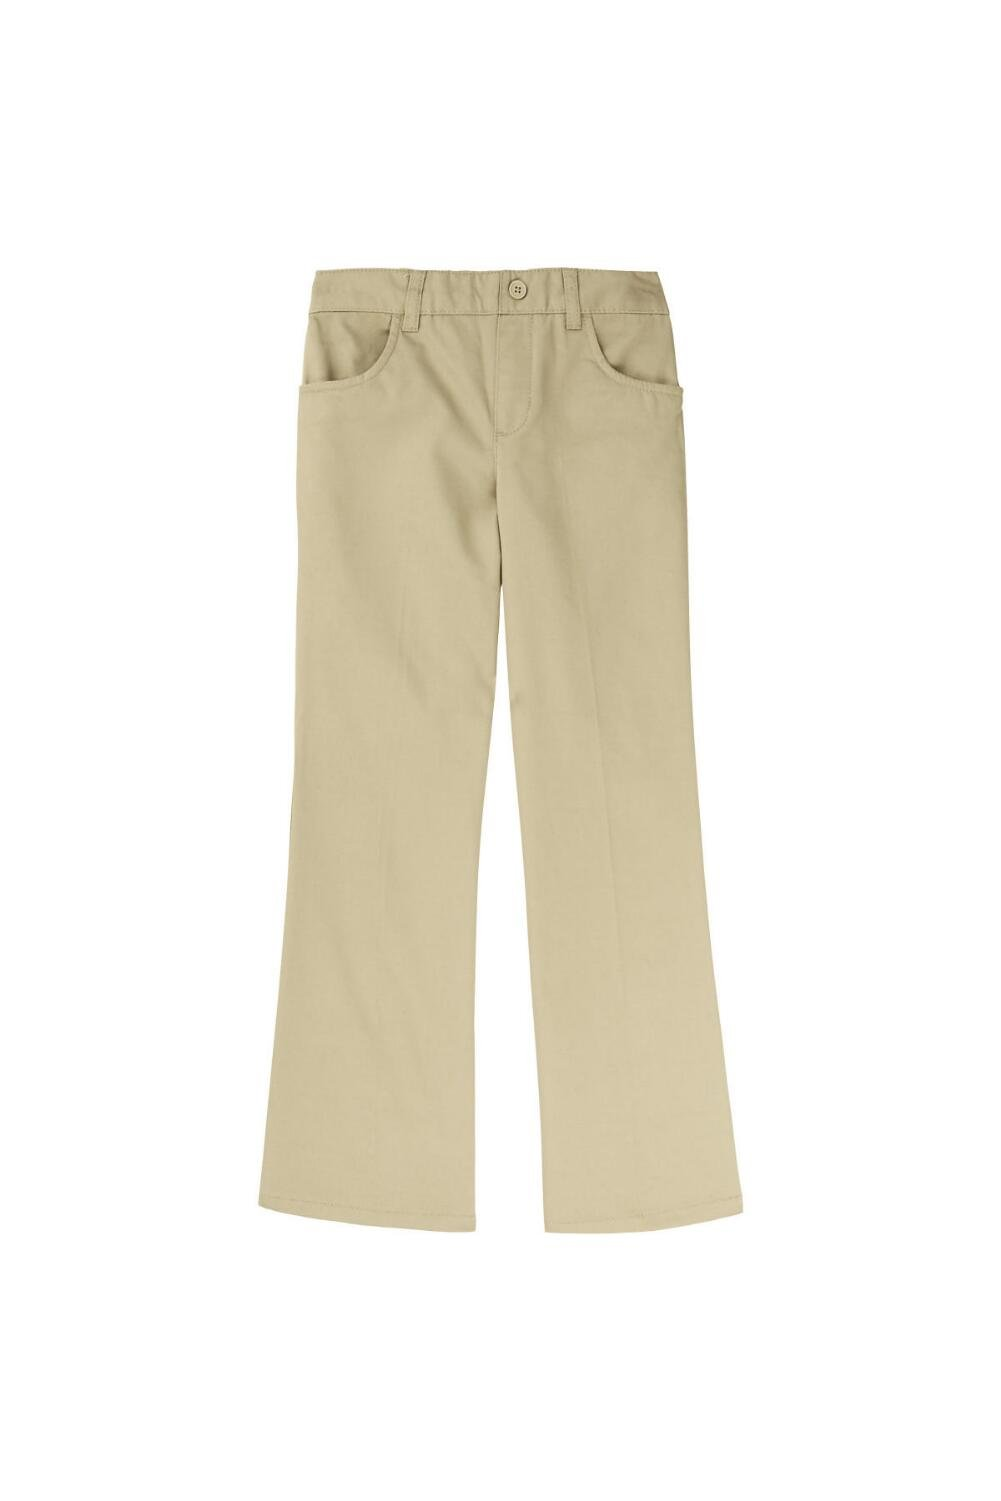 French Toast Little Girls' Pull-On Pant, Khaki, 4T